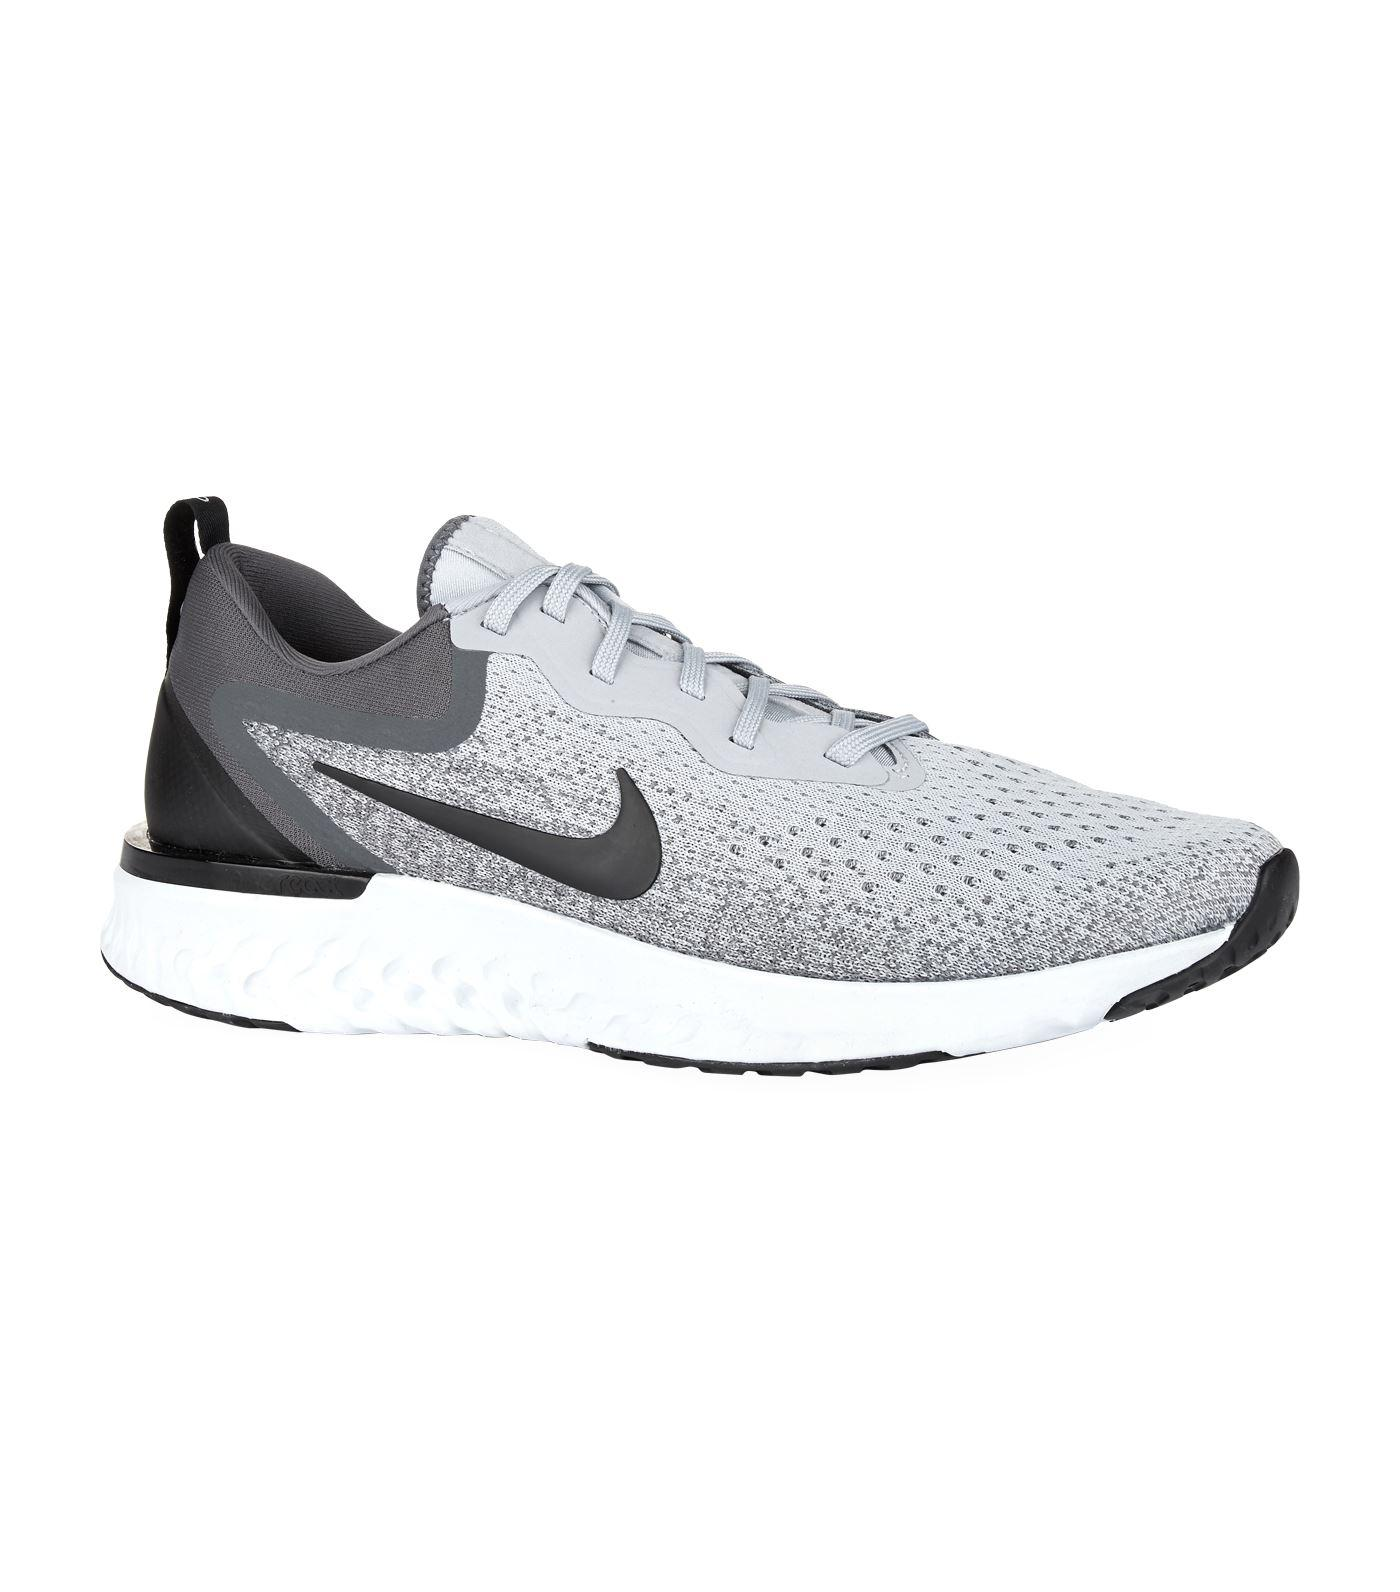 567dd09695ed Nike Odyssey React Trainers in Gray for Men - Lyst